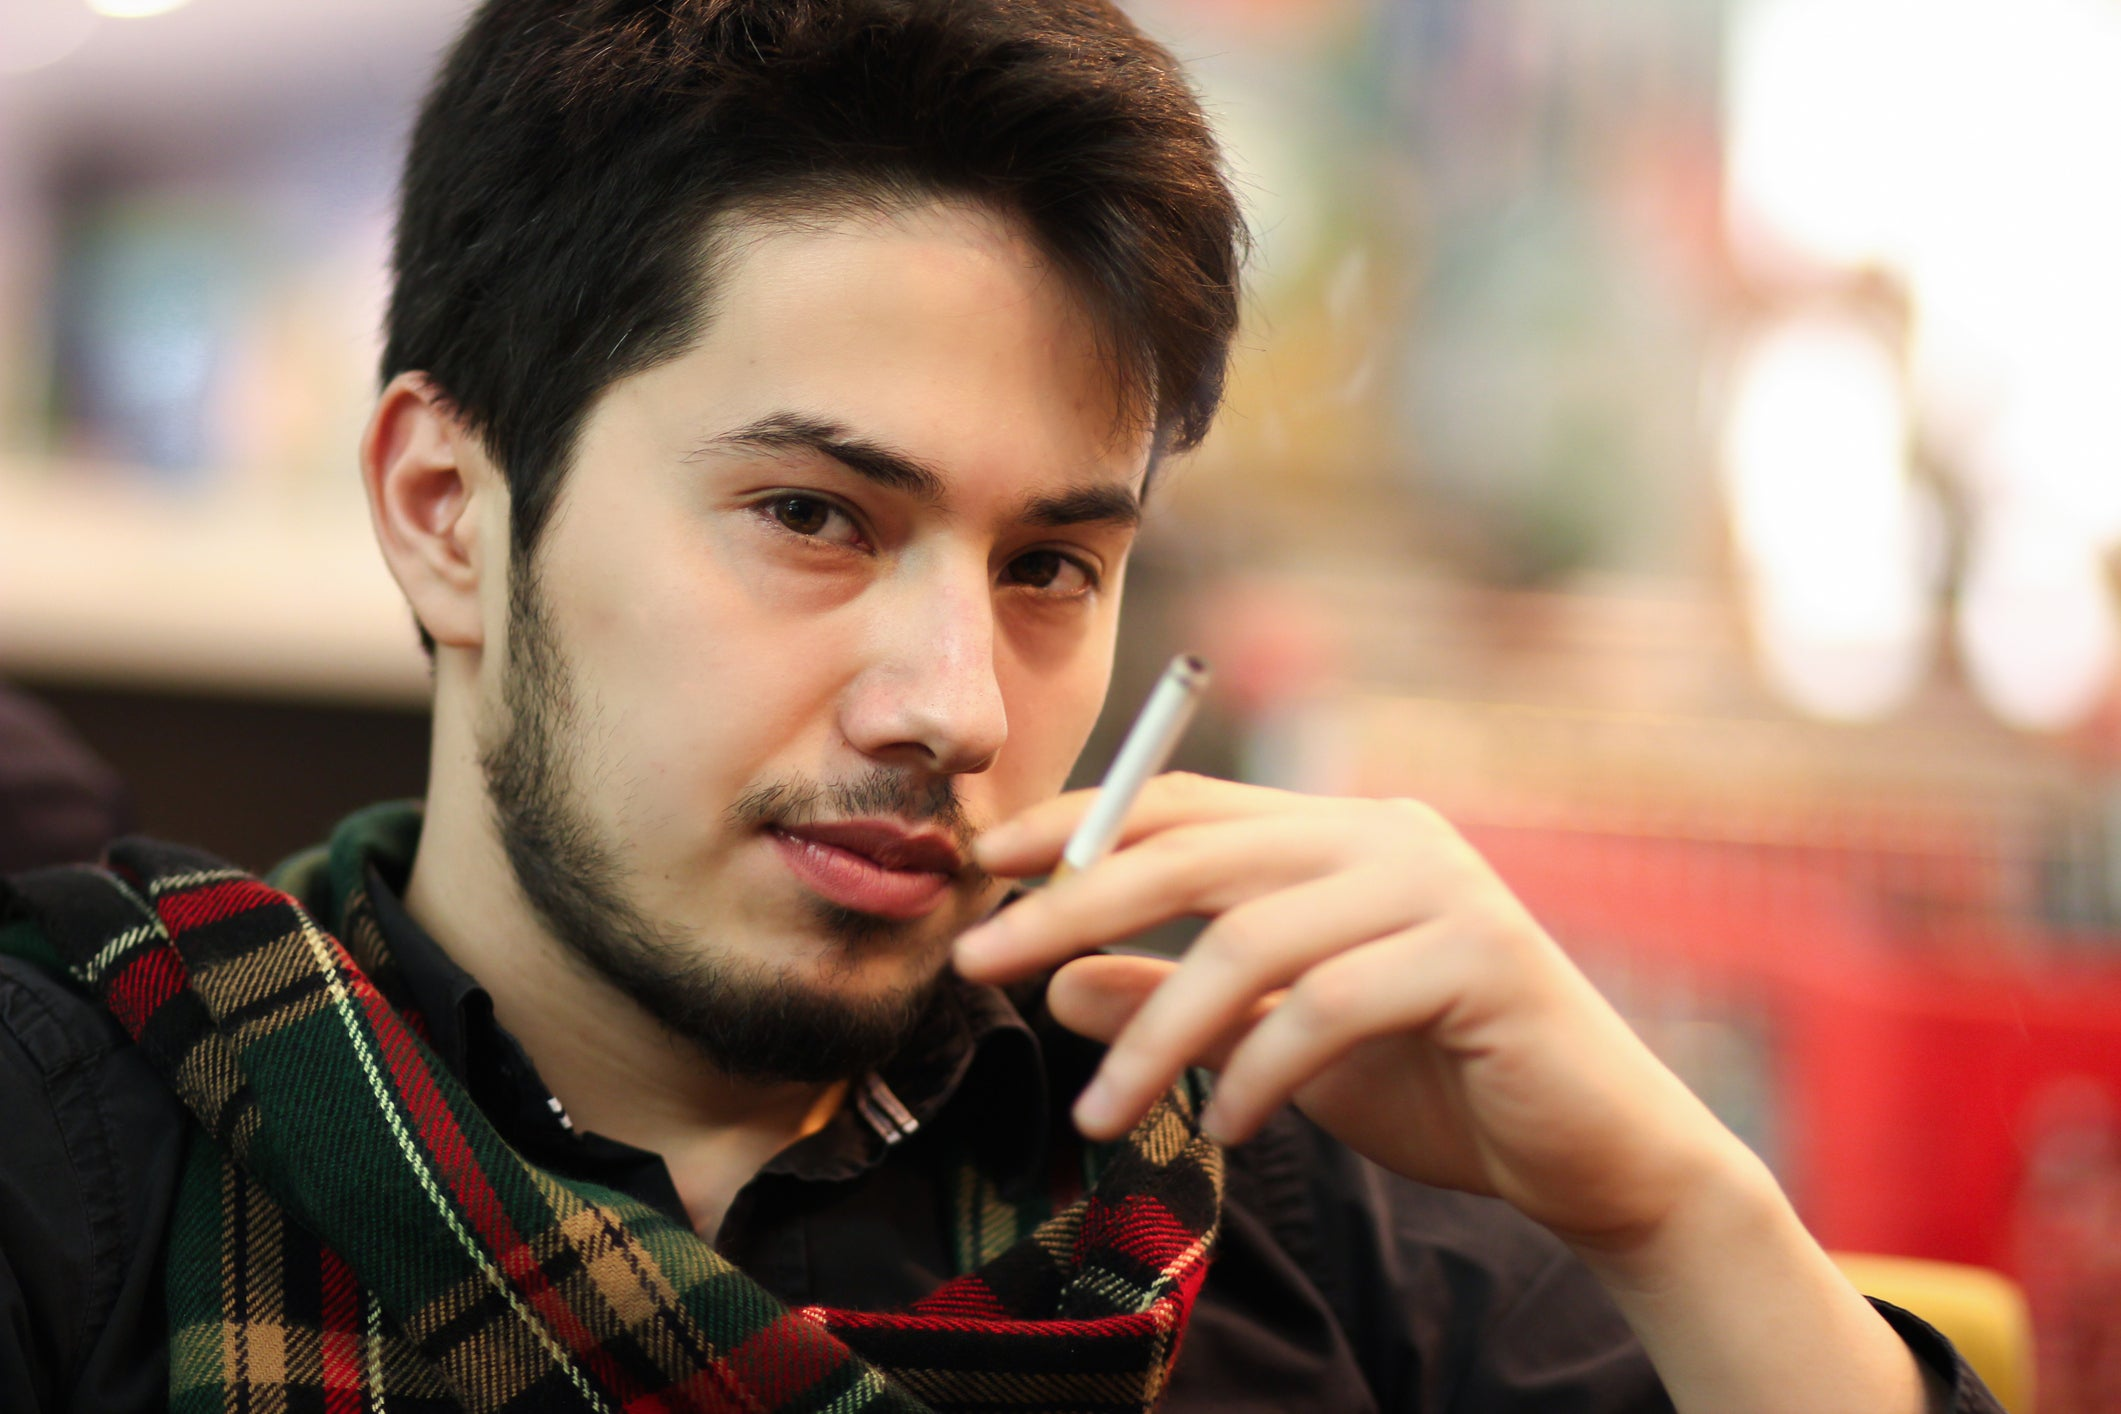 A young man sitting down and smoking a cigarette.